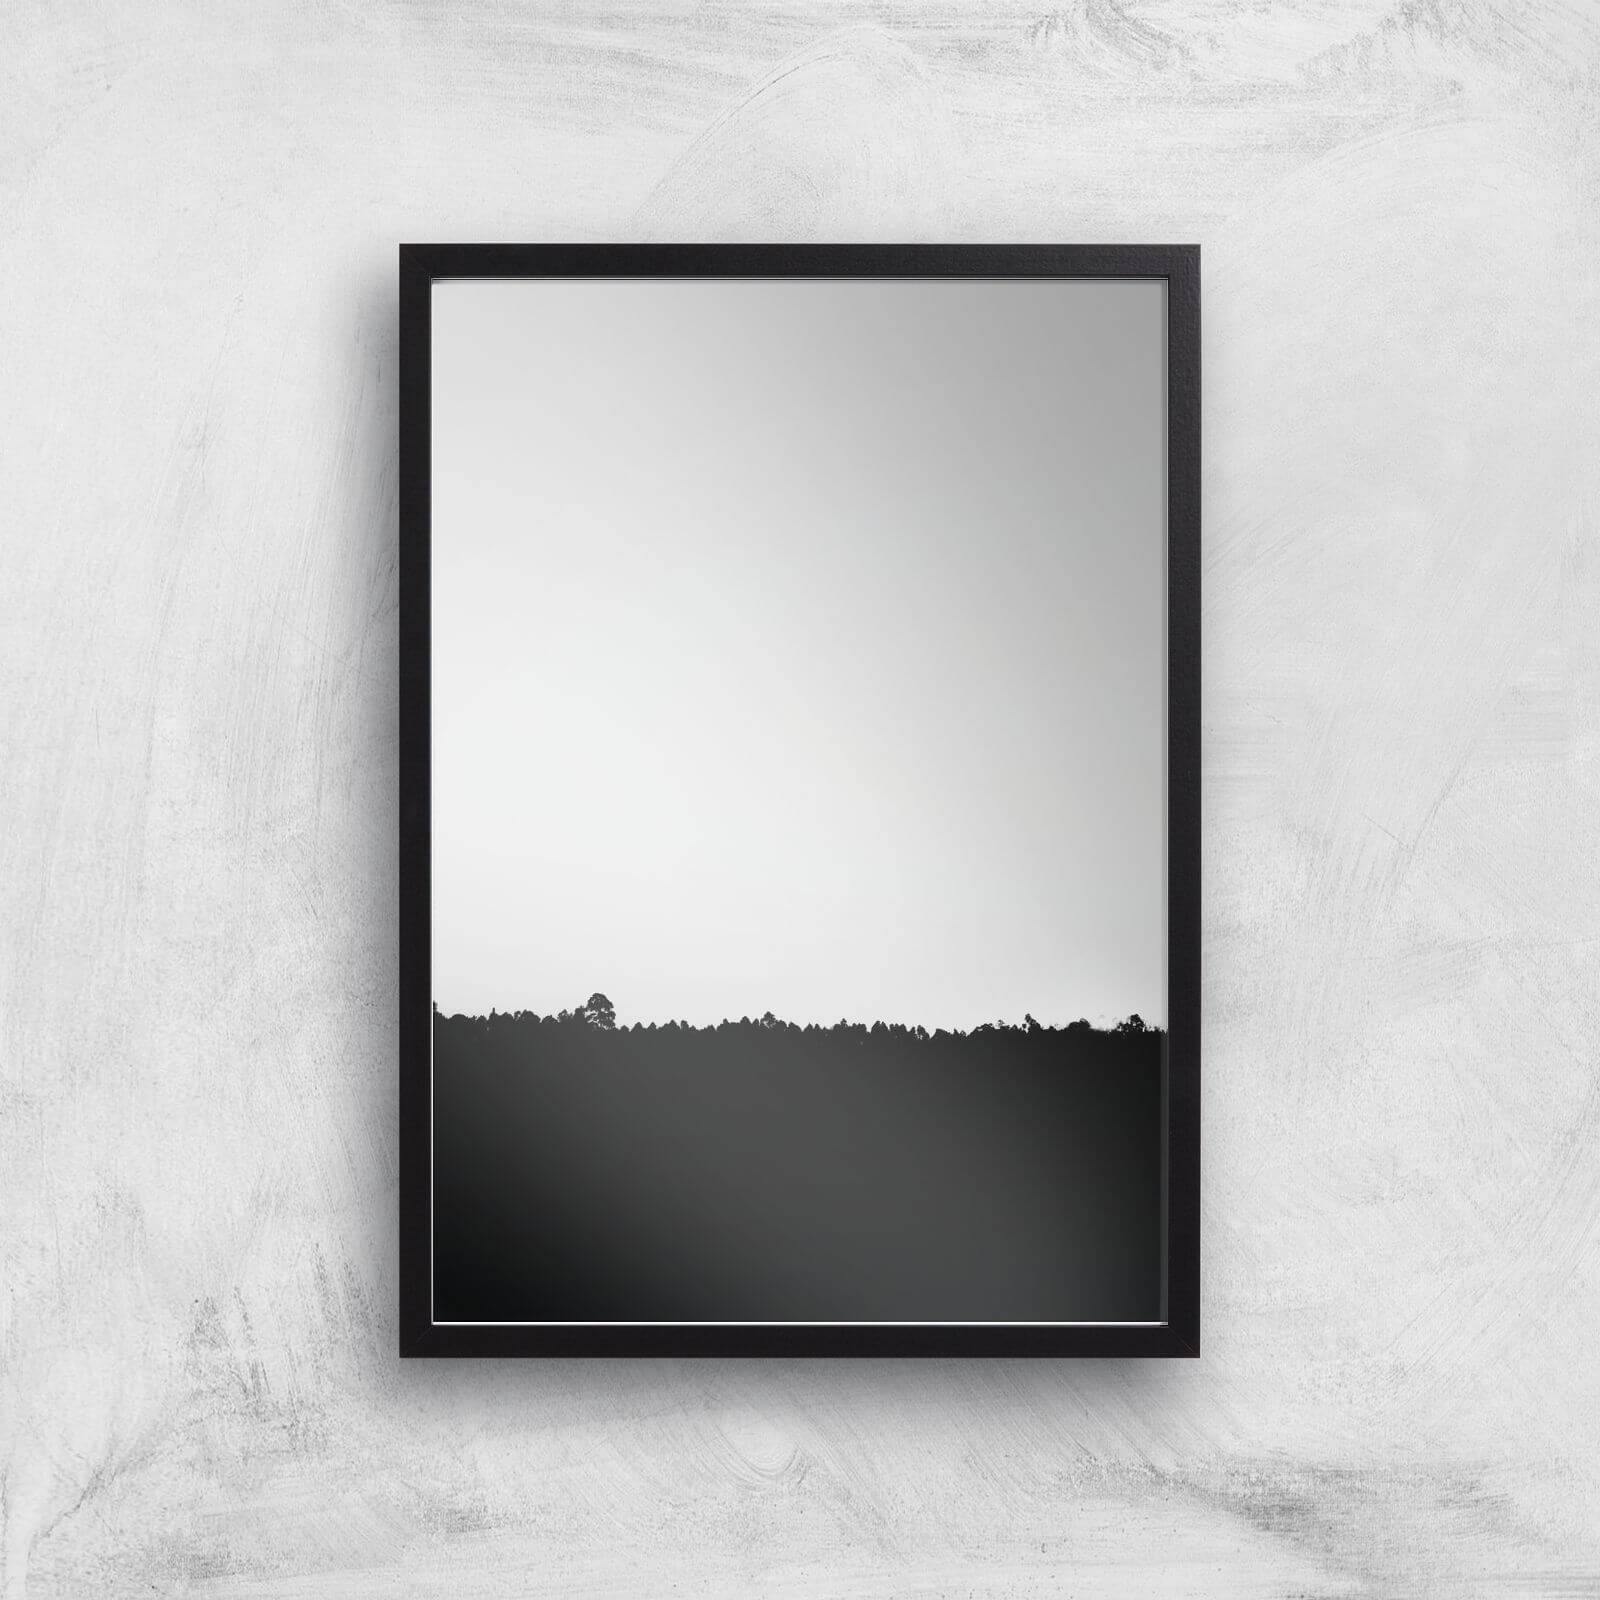 By IWOOT Minimal Ground Giclee Art Print - A2 - Black Frame-